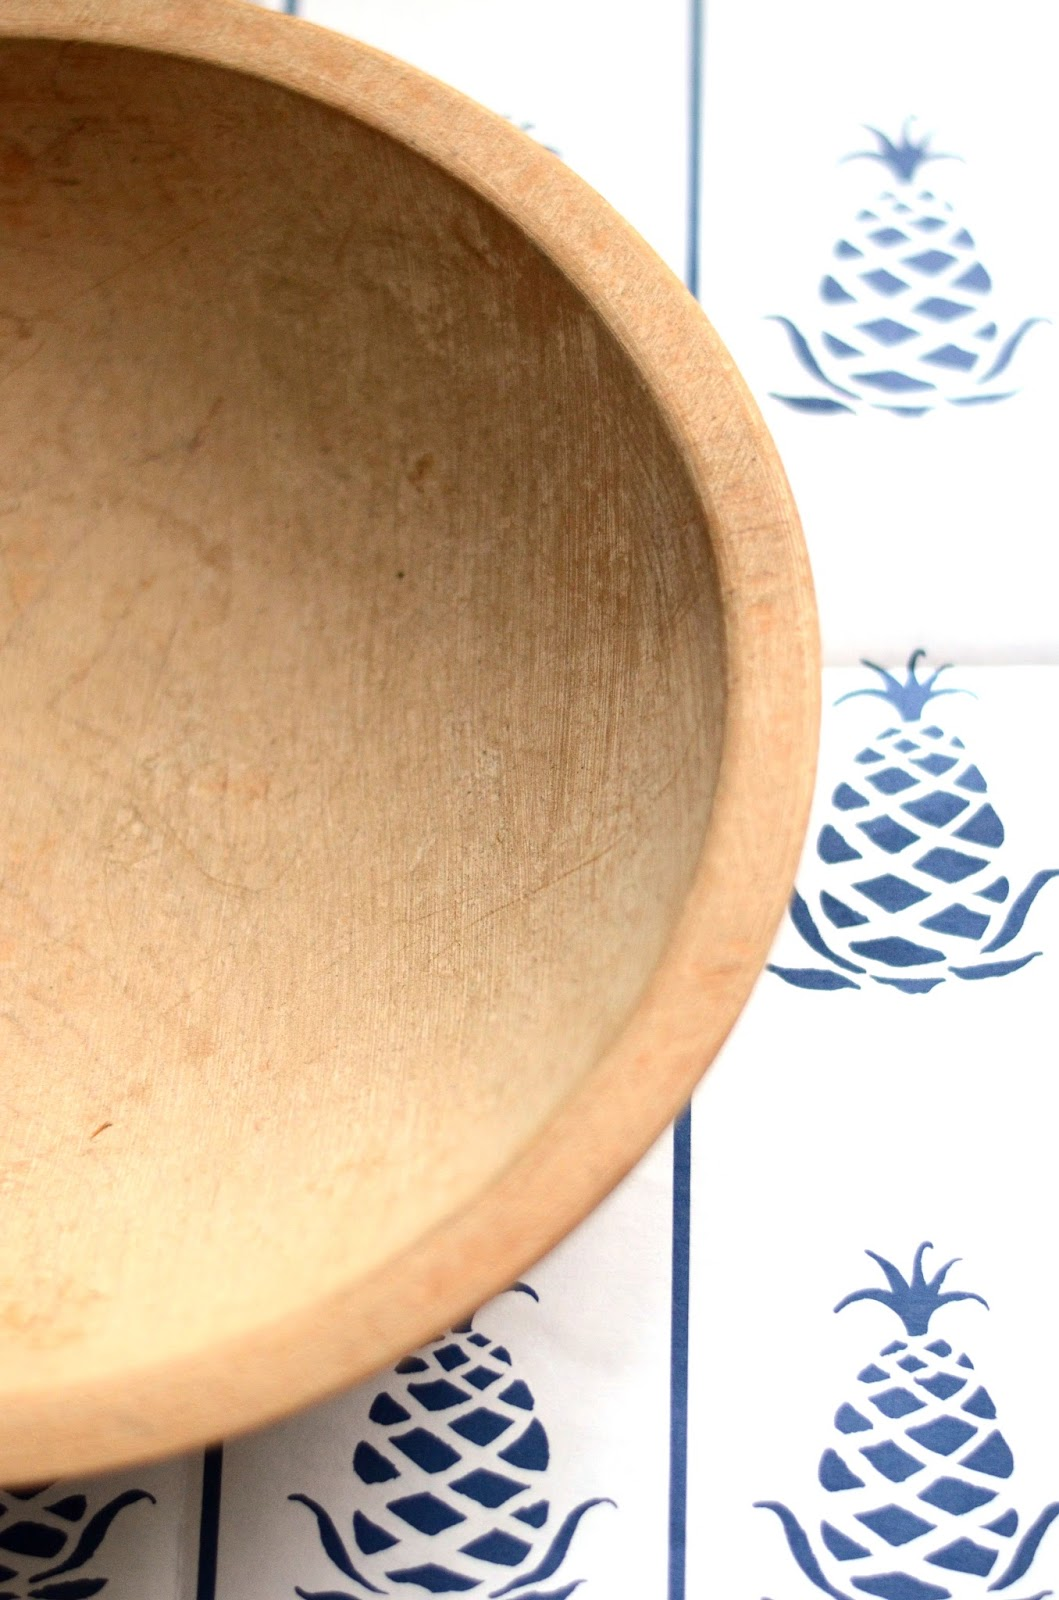 How To Restore A Wood Bowl.jpg